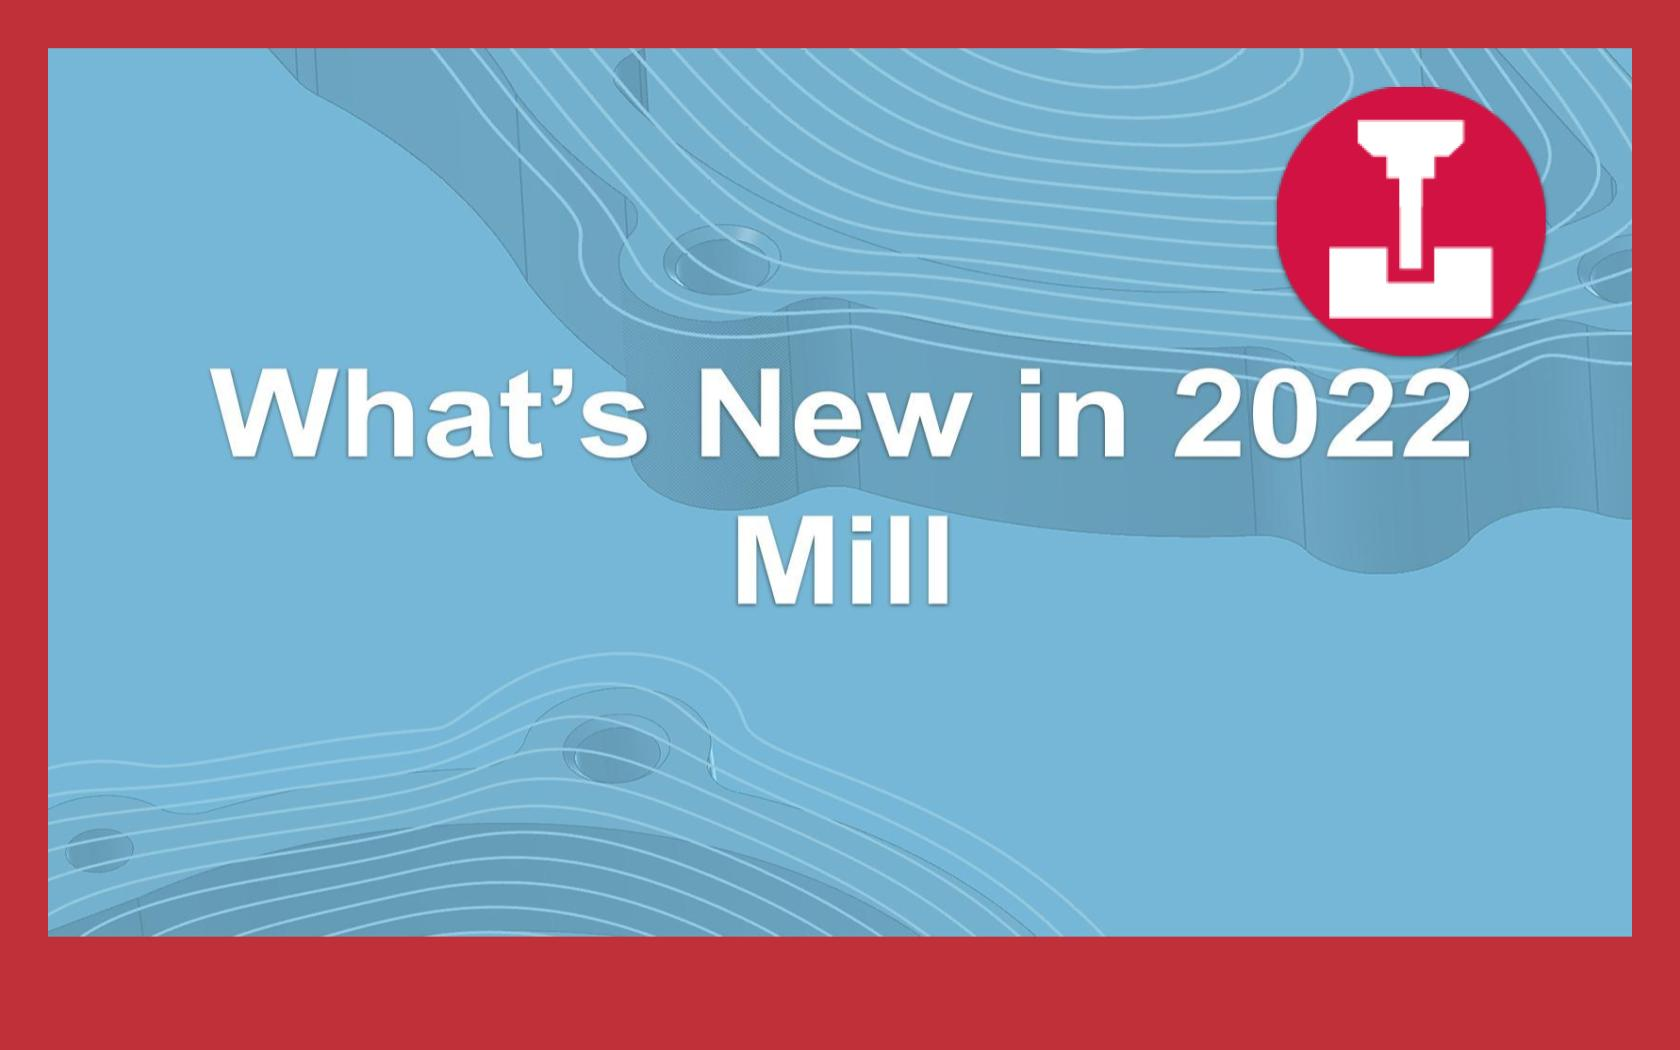 What's New in 2022 - Mill